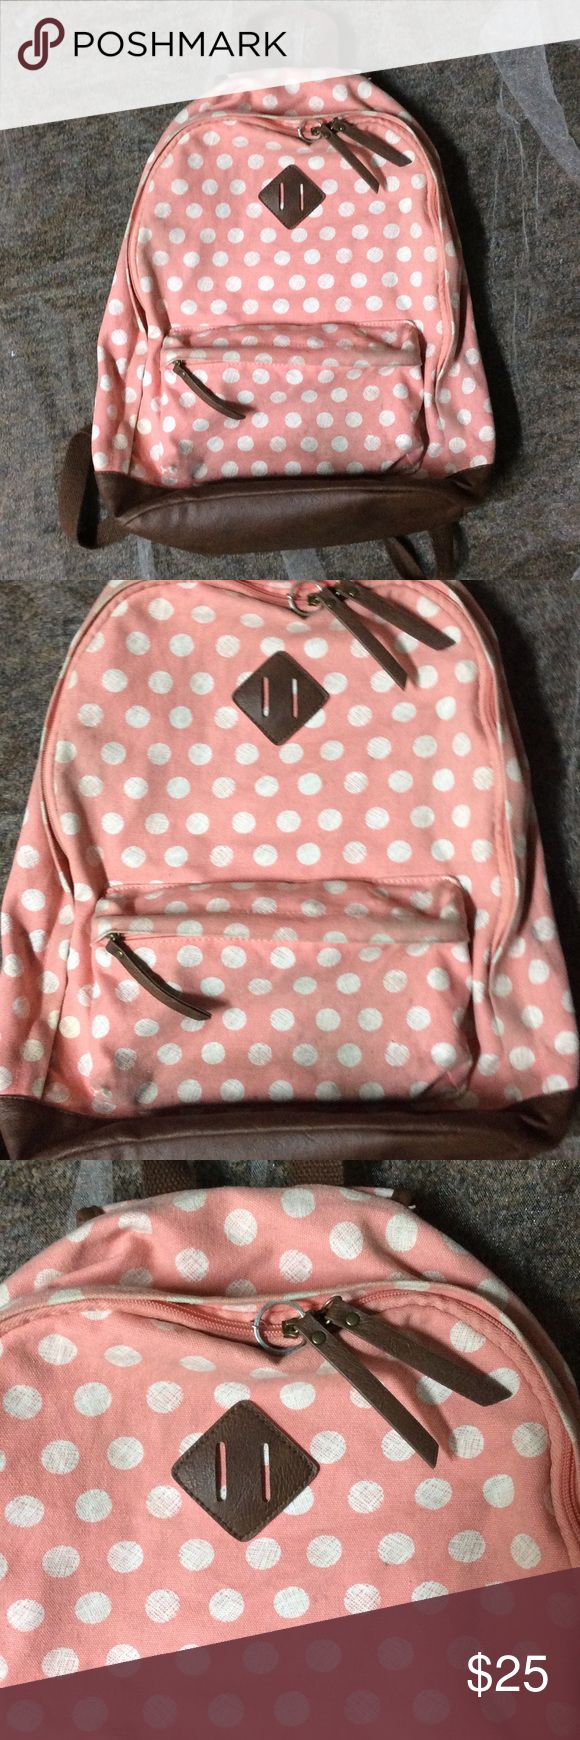 Pink and white polka dot backpack Preloved peachy pink backpack with white polka dots and brown leather straps. Bags Backpacks